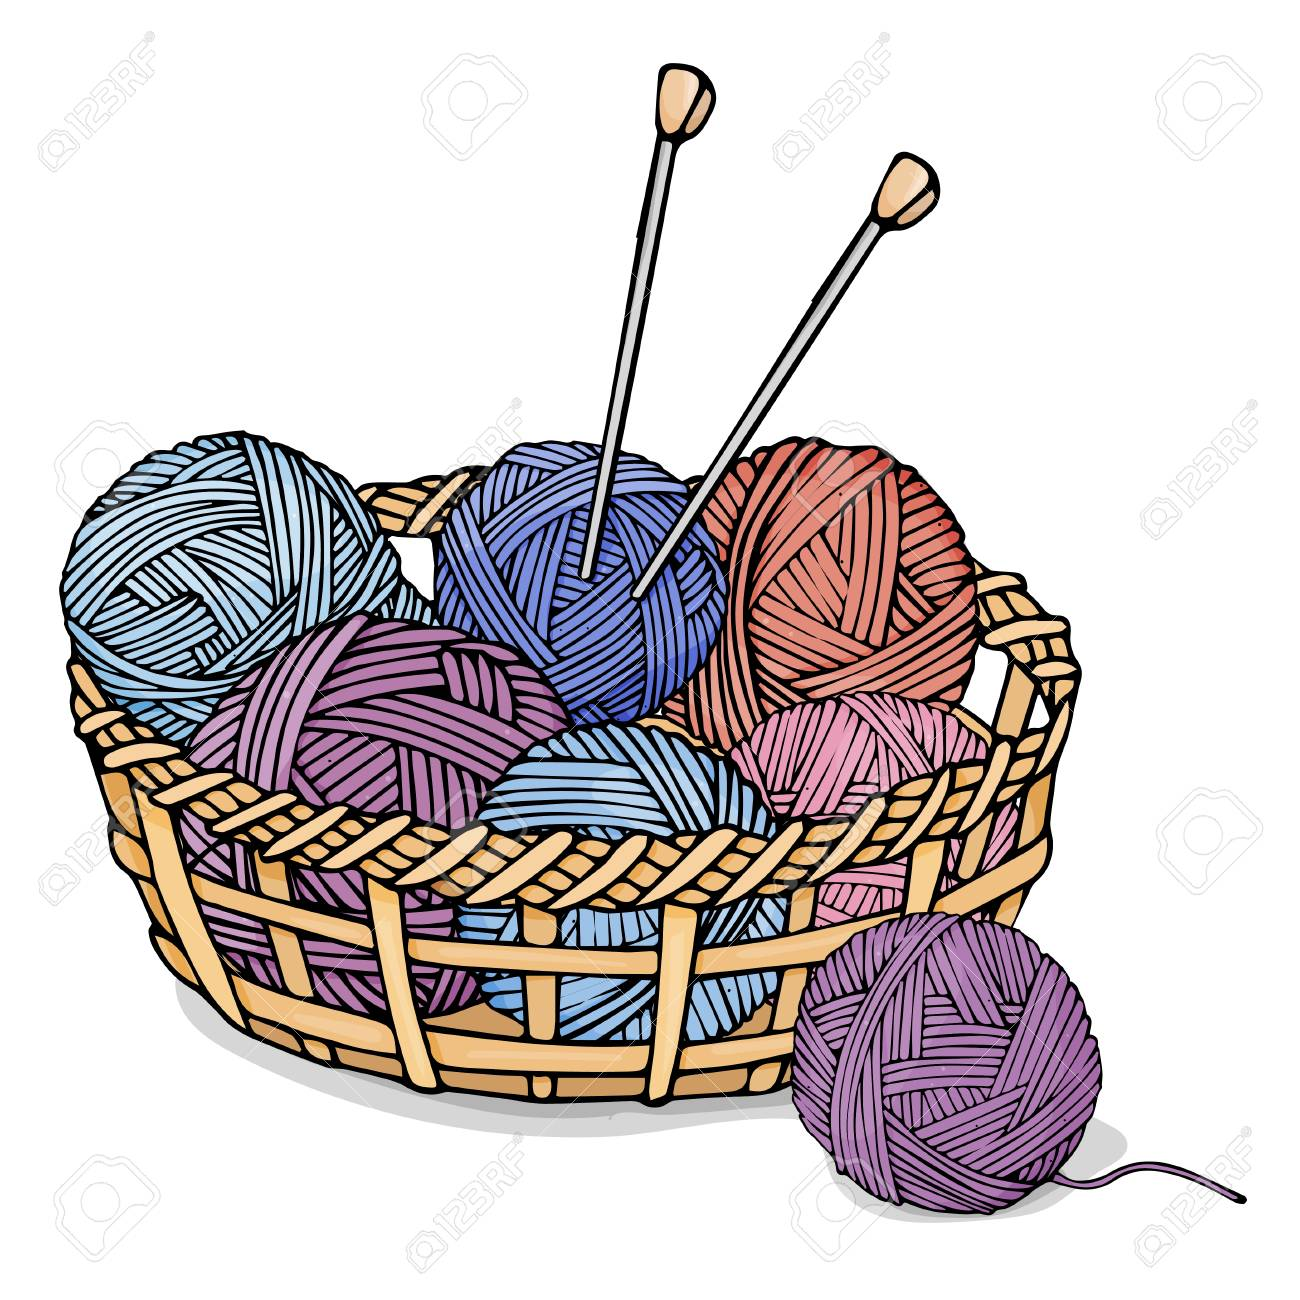 Tangles Of Different Colors With Wool For Knitting In A Wicker Royalty Free Cliparts Vectors And Stock Illustration Image 111889252